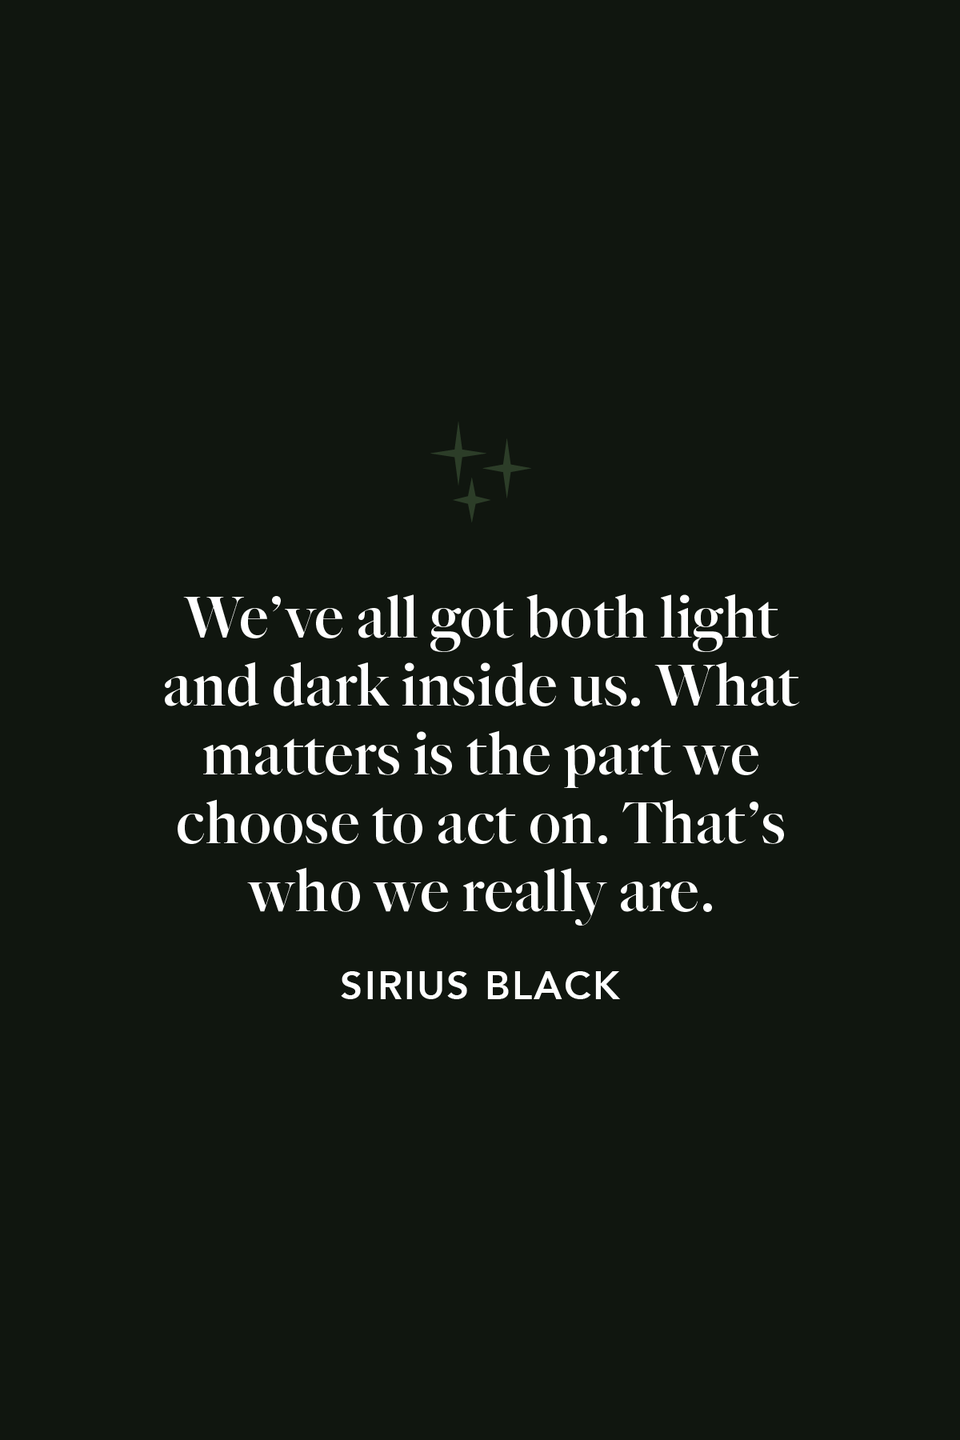 """<p>In the fifth film, <em>The Order of the Phoenix</em>, Gary Oldman's Sirius Black says: """"We've all got both light and dark inside us. What matters is the part we choose to act on. That's who we really are.""""</p>"""